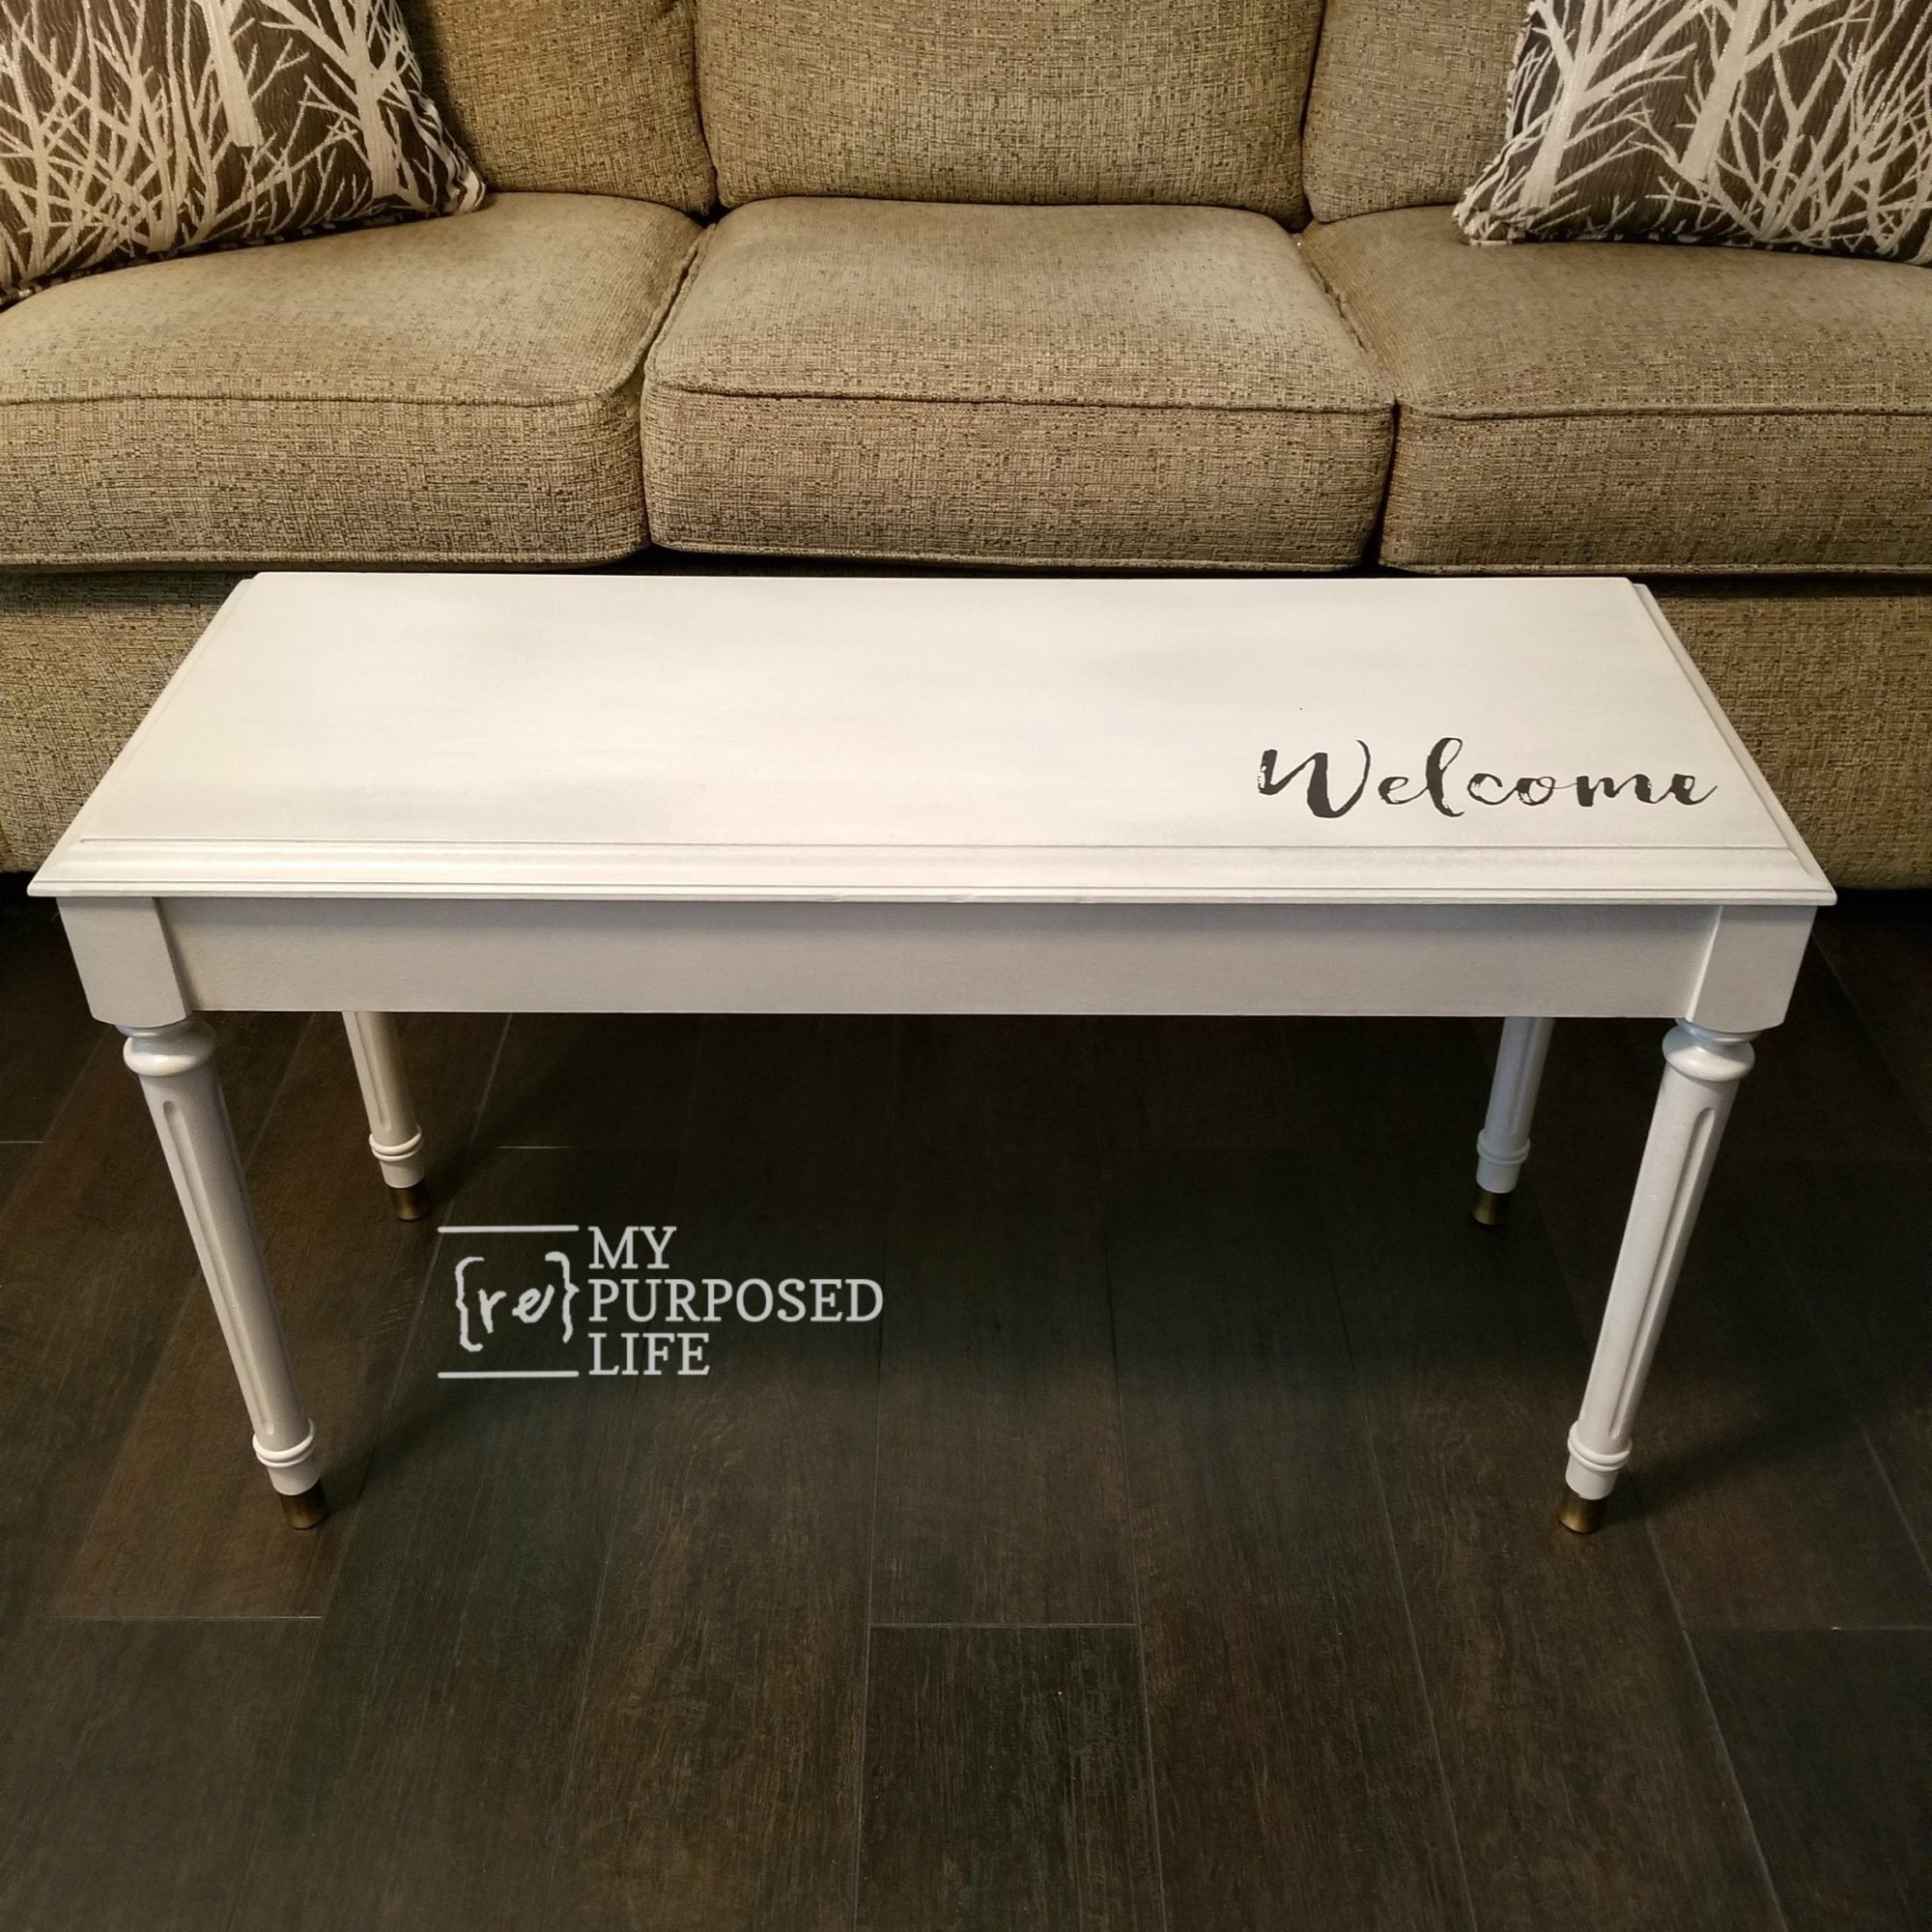 17 Best Images About Repurposed Furniture On Pinterest: Piano Bench Redo With Paint And Glaze